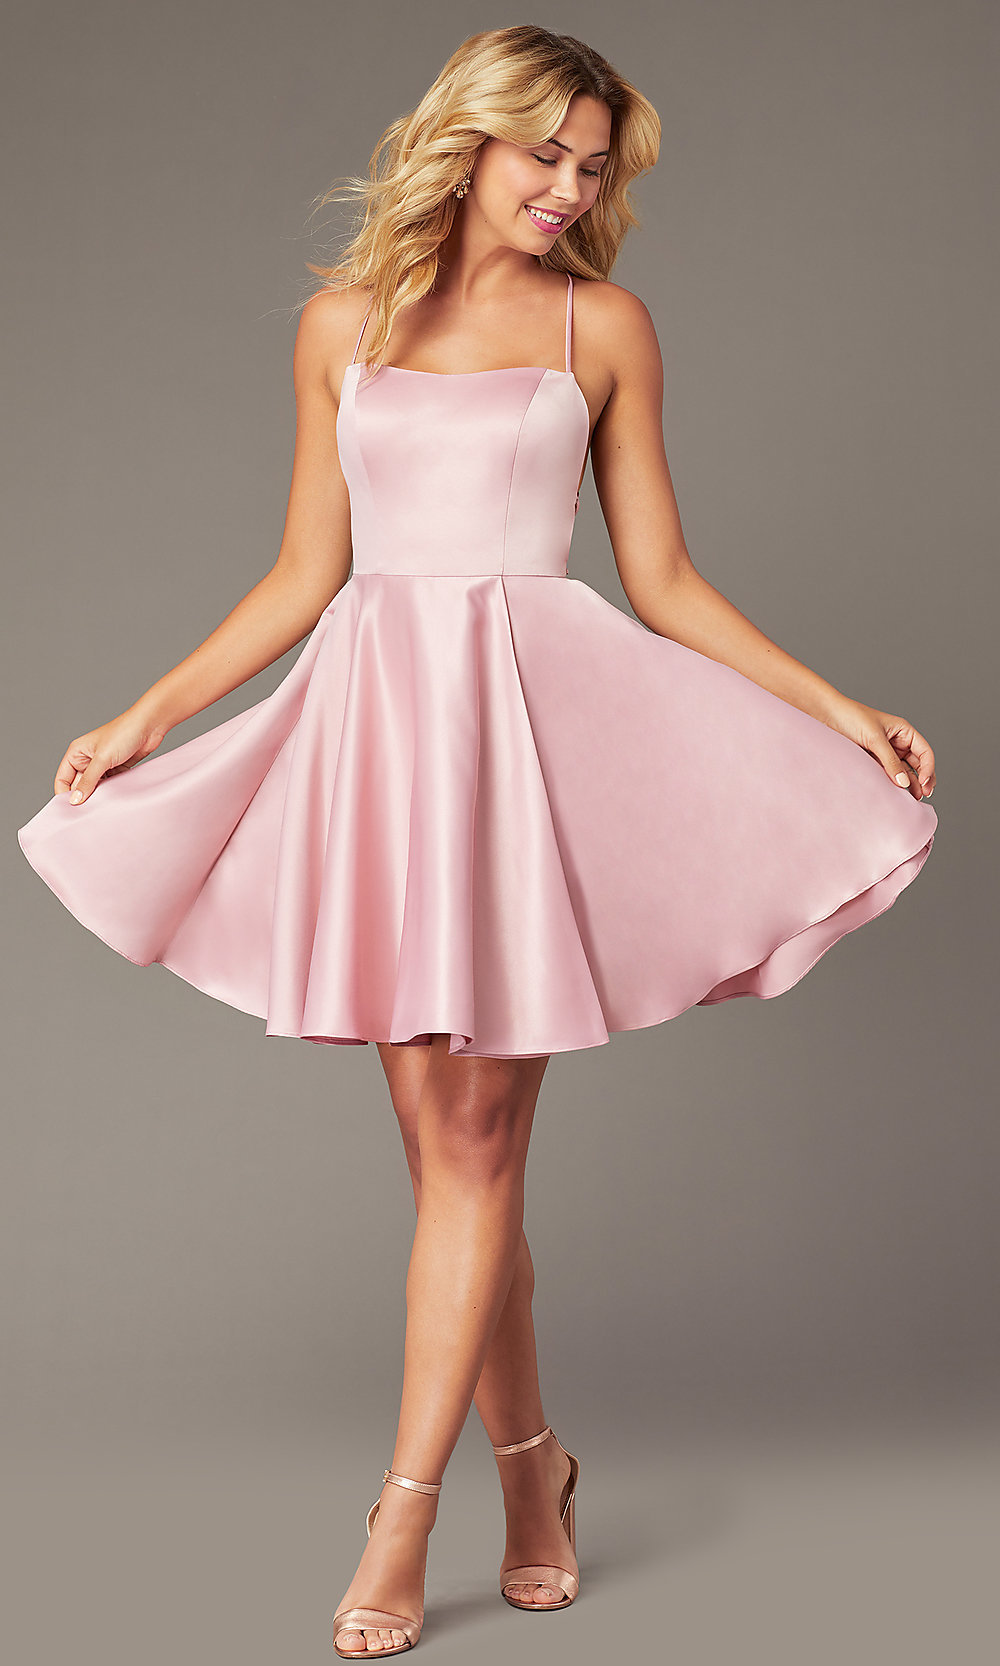 Backless Short Homecoming Party Dress with Corset